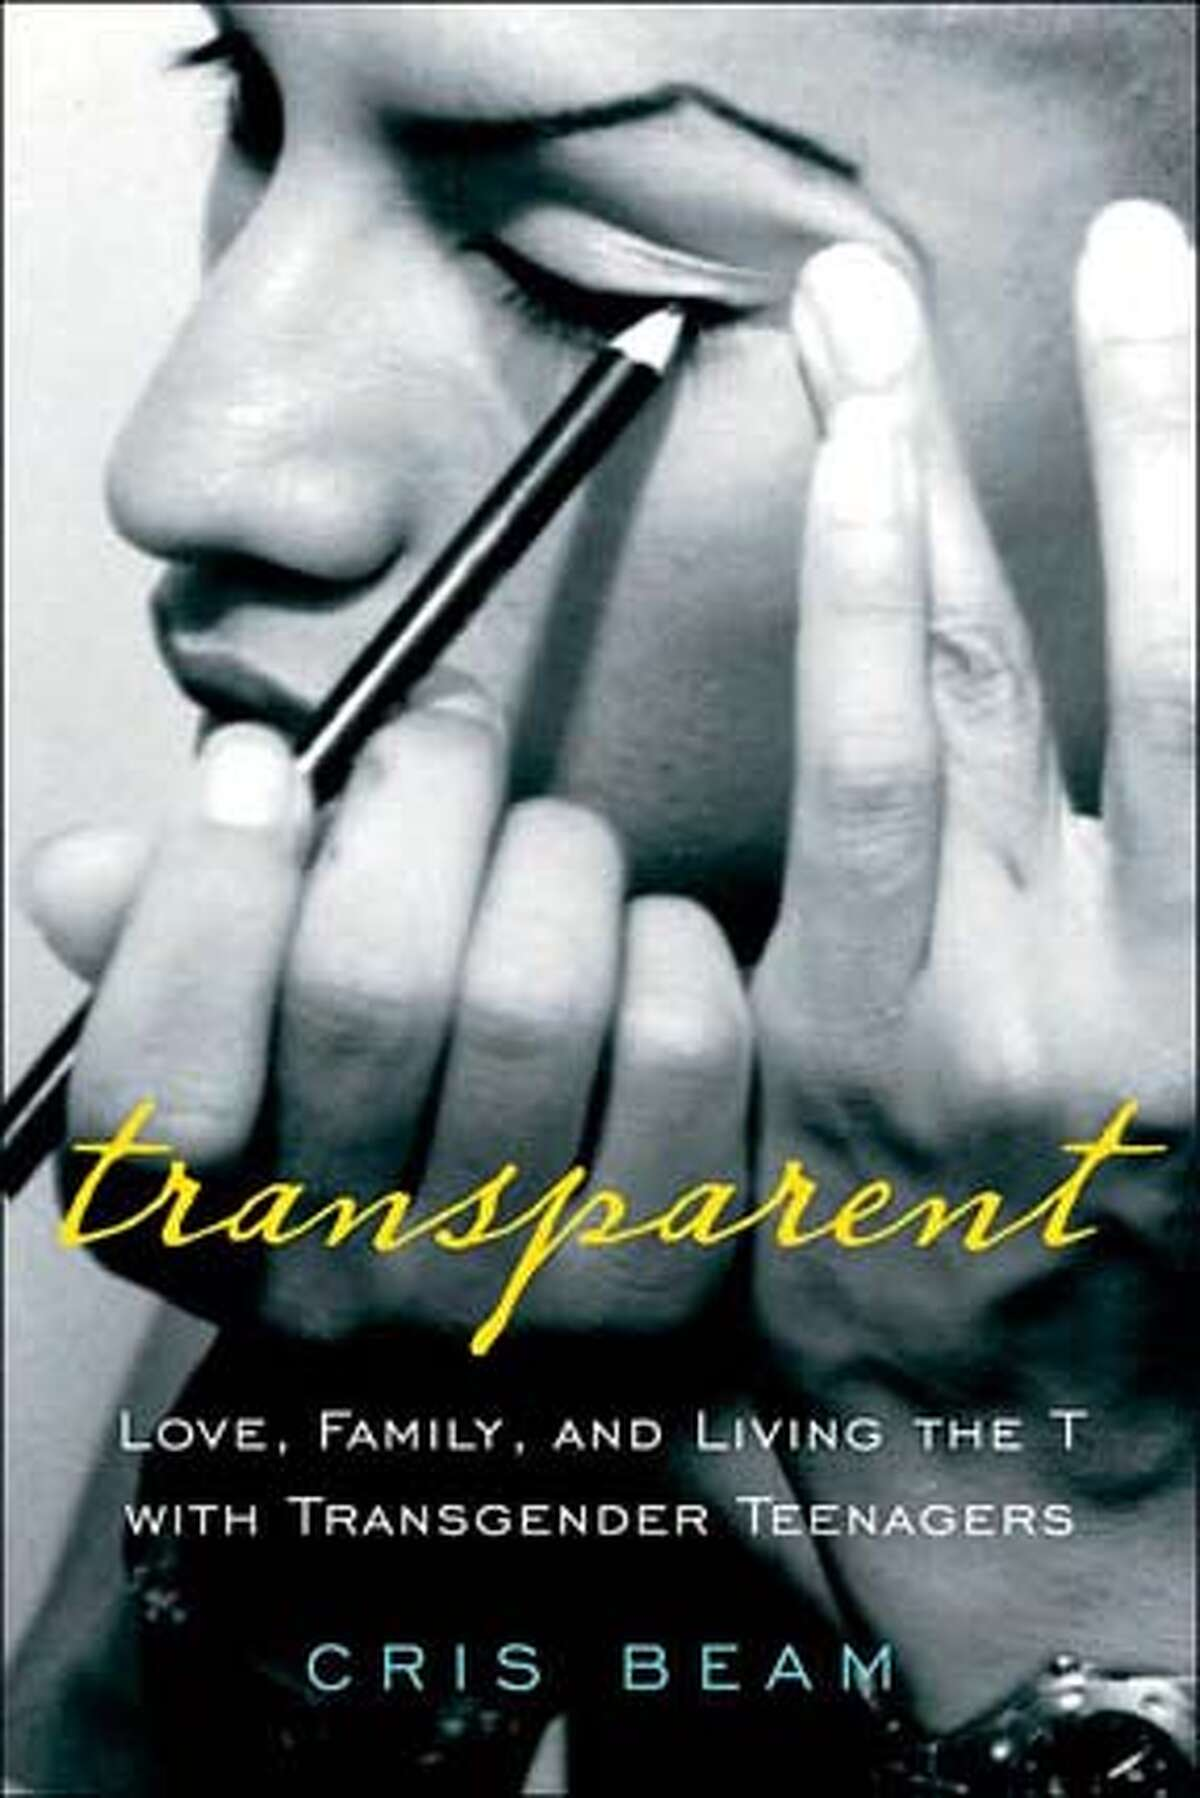 """""""Transparent: Love, Family and Living the T with Transgender Teenagers"""" by Cris Beam"""